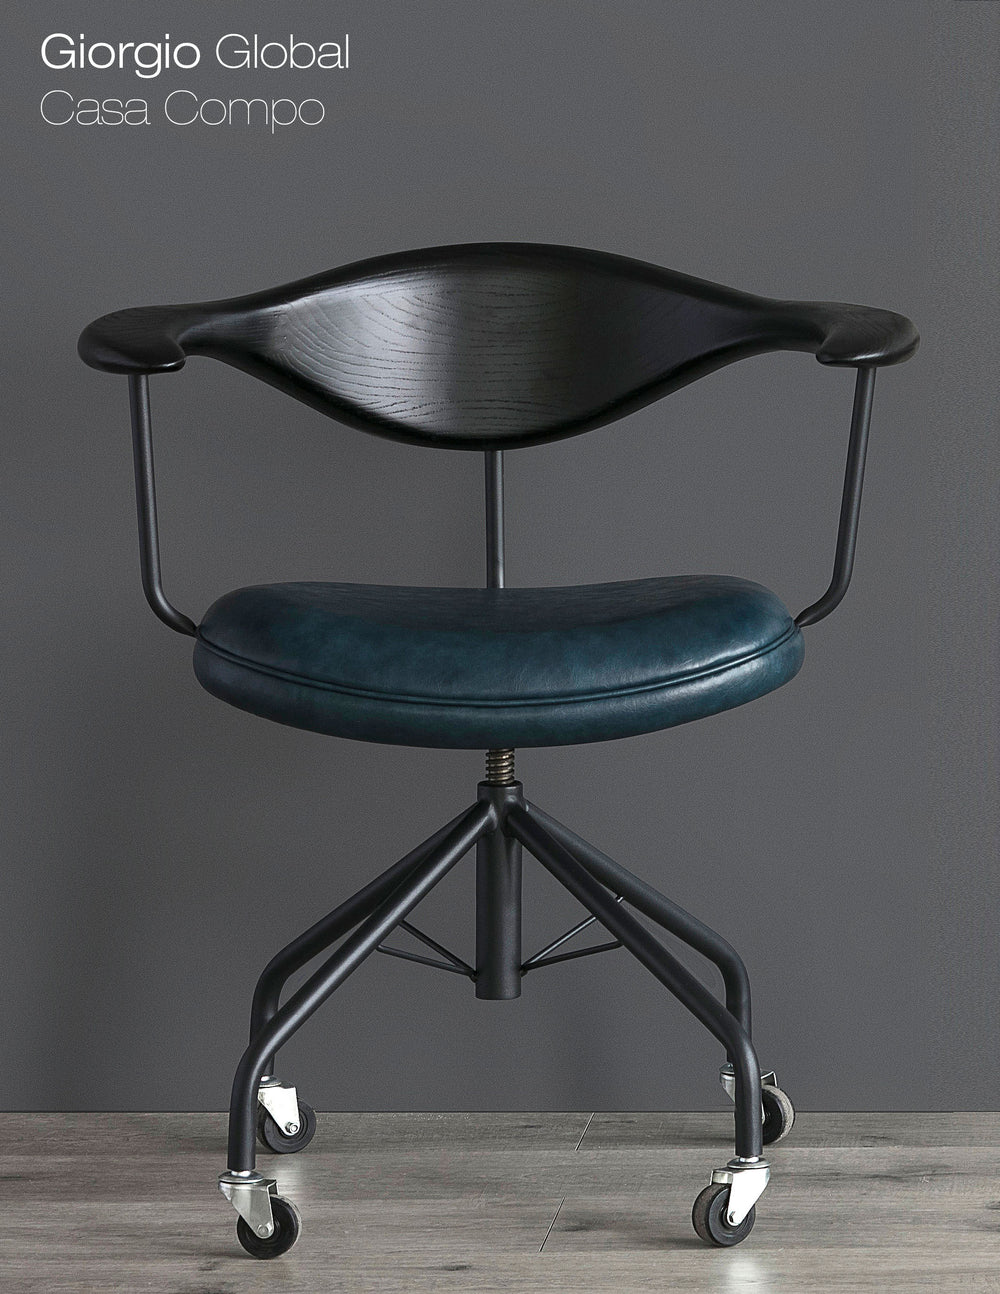 GG Casa Uno Desk Chair